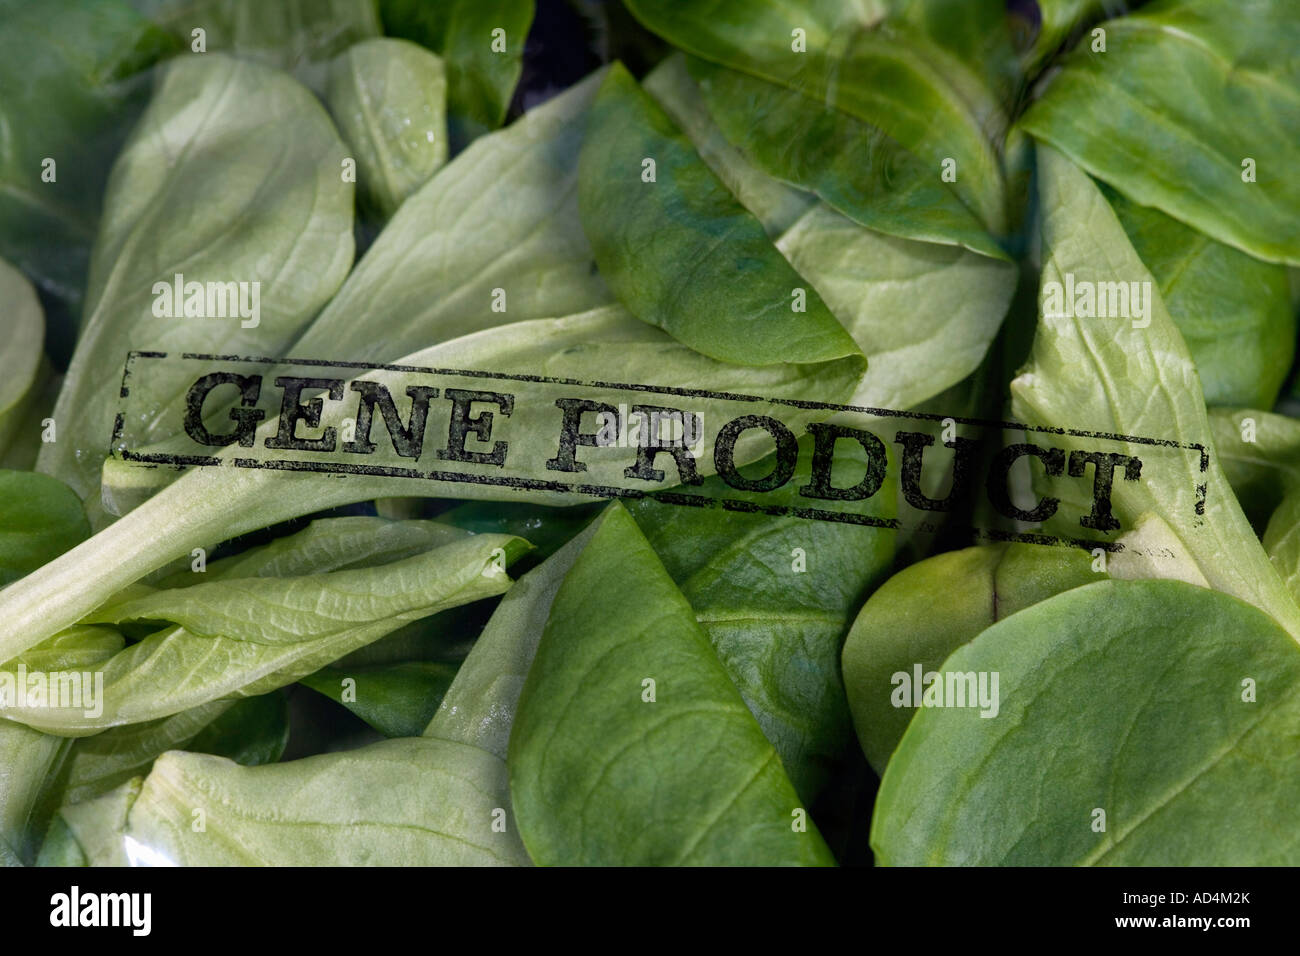 A packet of corn salad stamped 'Gene Product' - Stock Image